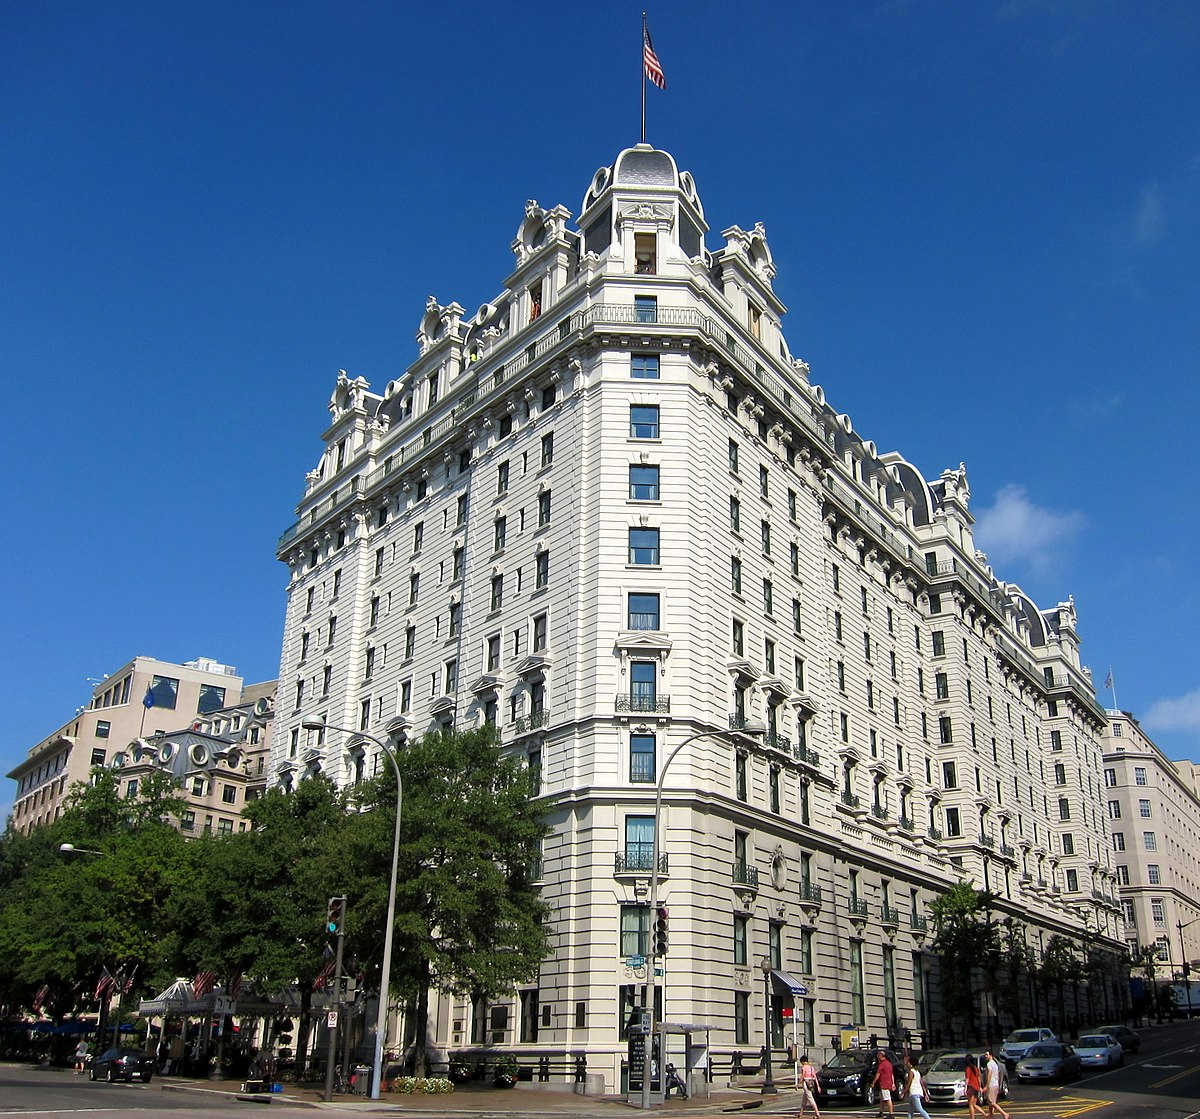 map washington dc hotels with Willard Intercontinental Washington on Great Falls in addition Attraction review G41185 D558917 Reviews Arundel mills Hanover maryland likewise Zoo Package besides Things See Do Capitol Riverfront together with Proper Capitalization Seth Saith Travel.